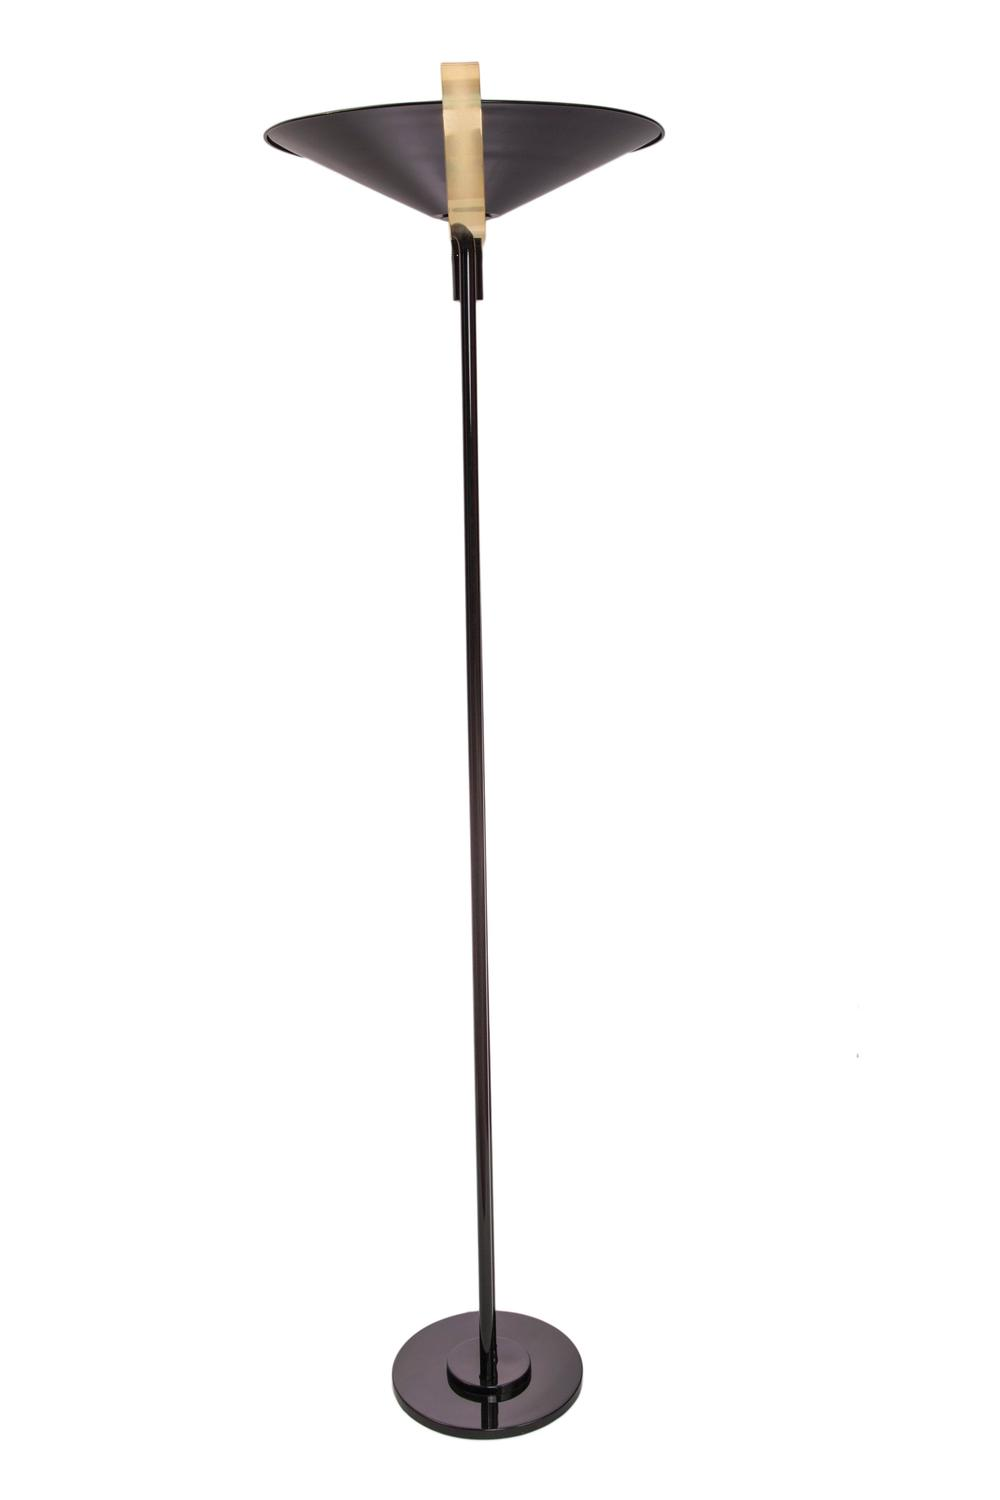 1950s Torchiere Floor Lamp For Sale At 1stdibs